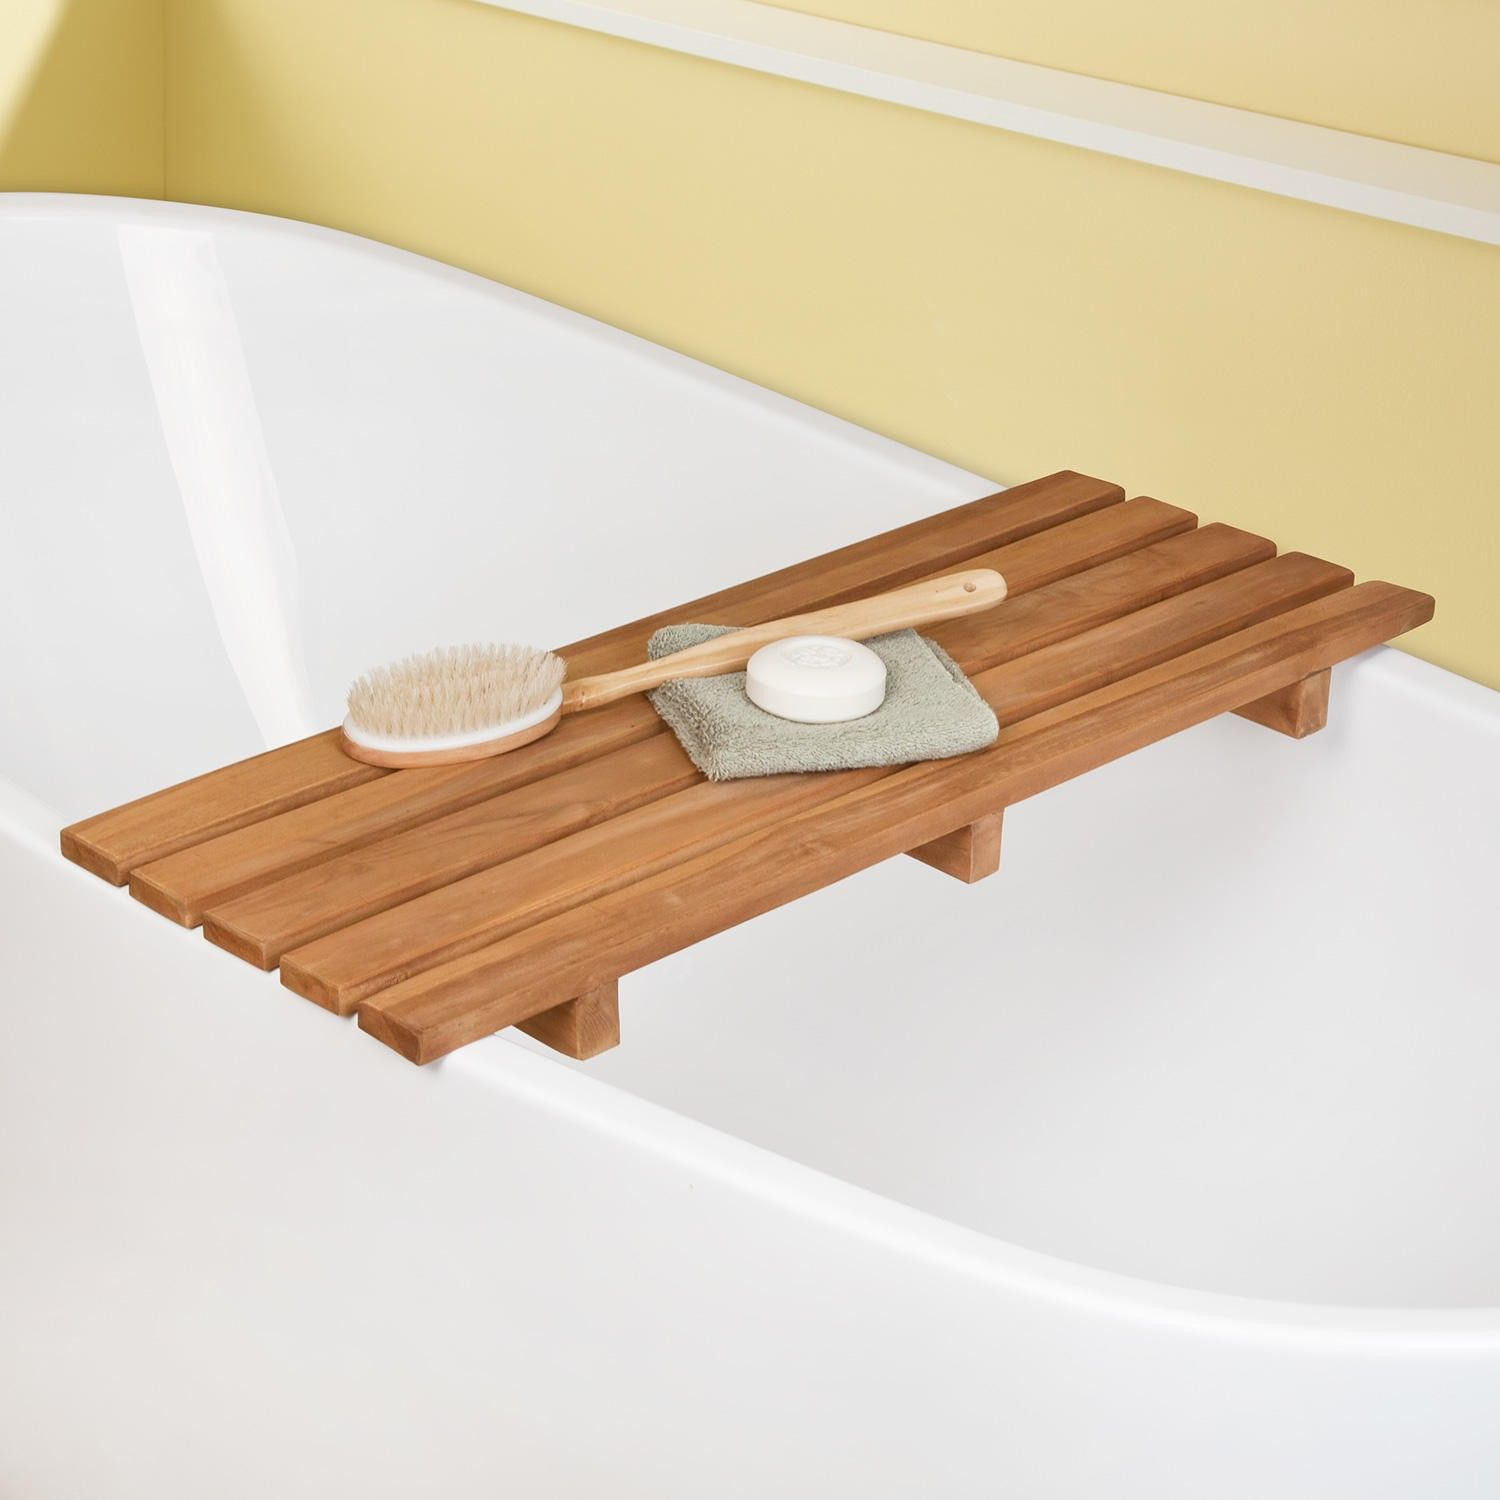 17 Best images about Bath Caddy on Pinterest   Shade plants  Bath caddy and  Leaf stepping stones. 17 Best images about Bath Caddy on Pinterest   Shade plants  Bath